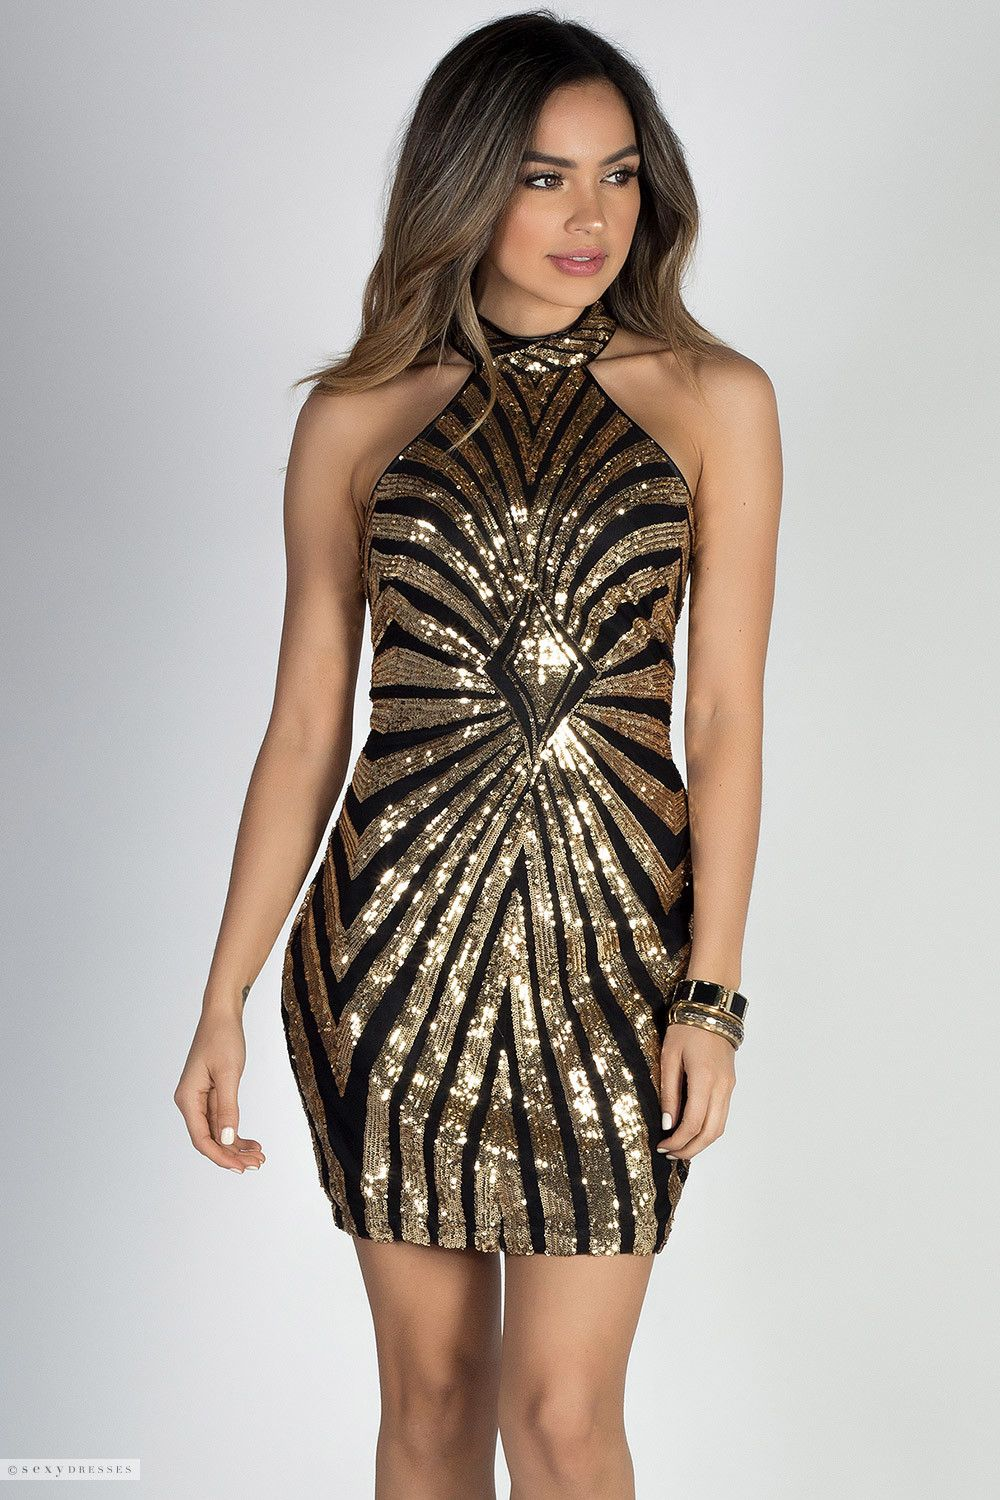 Geo Pattern Gold   Black High Neck Halter Sexy Sequin Party Dress 7f4652c8f